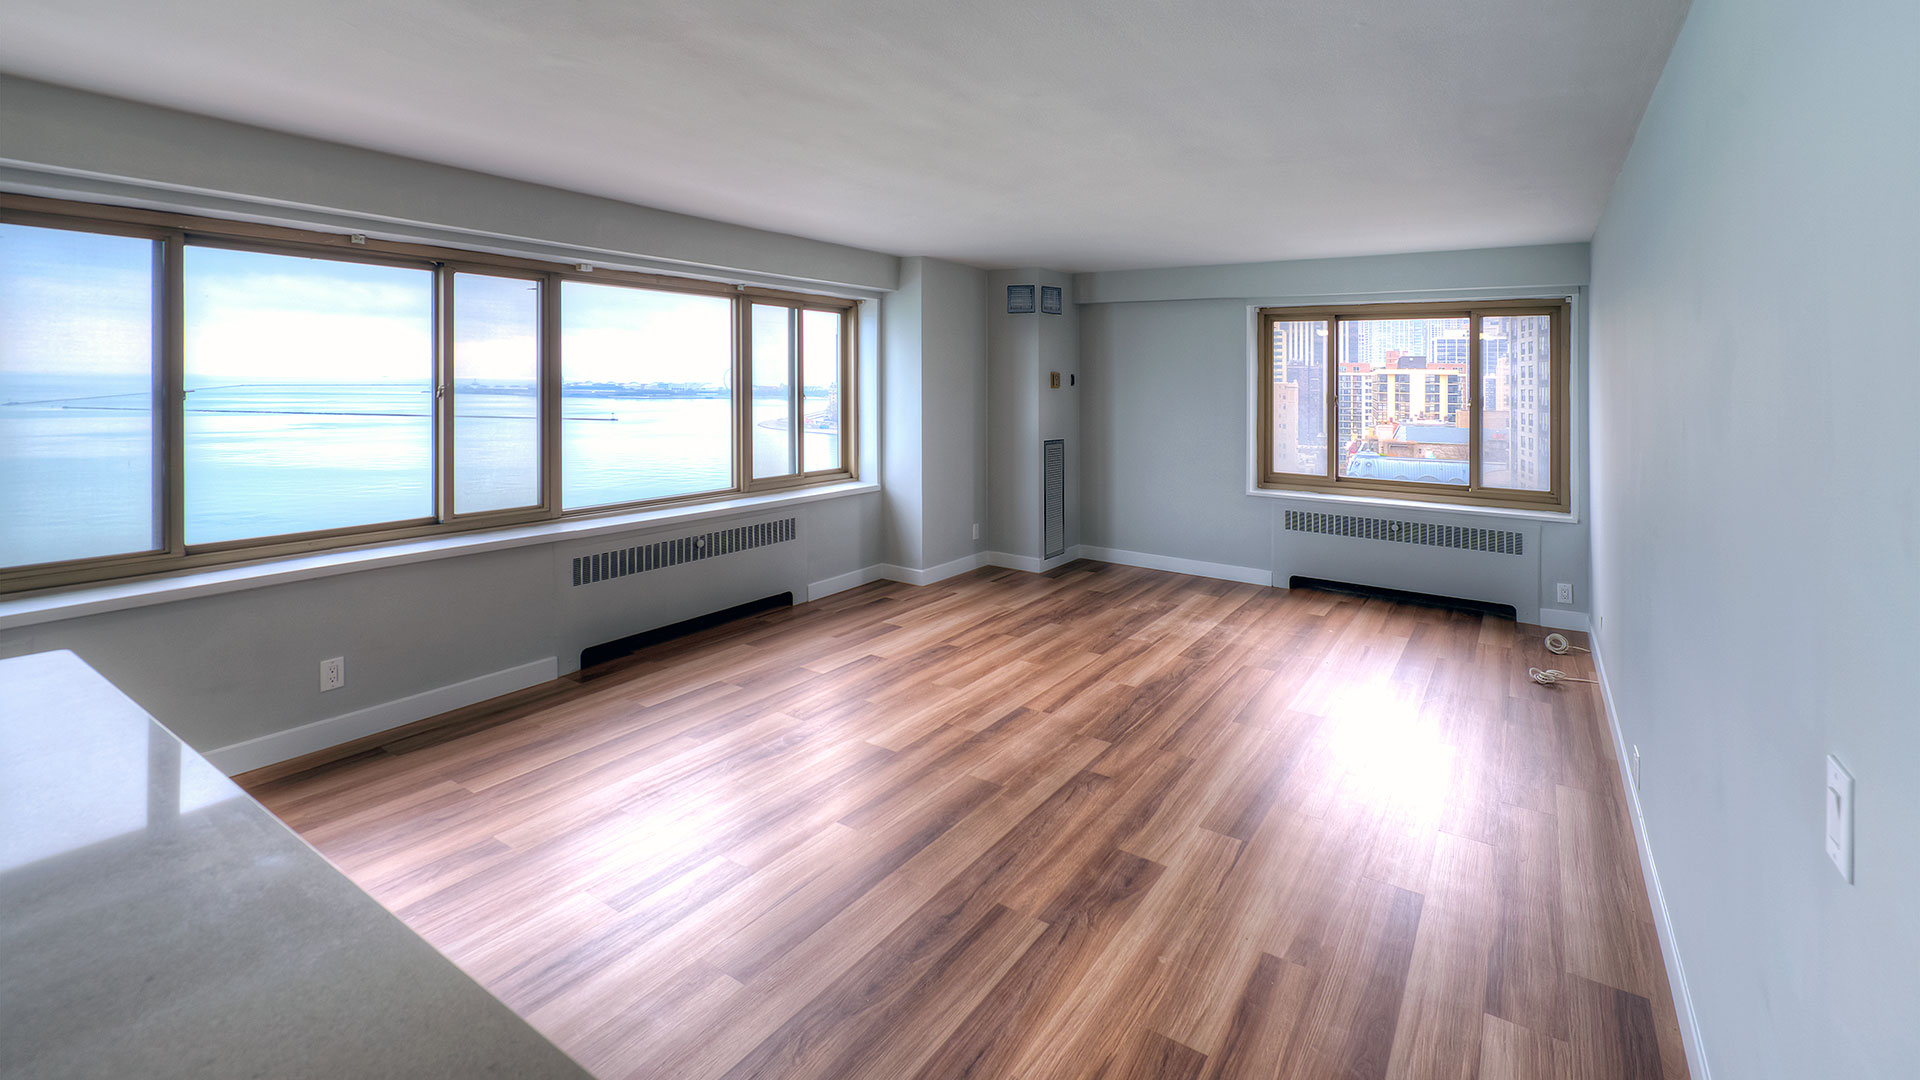 An empty living room of a 1350-1360 Lake Shore Drive residence. The windows on the left show Lake Michigan. The windows on the far side show the city of Chicago.